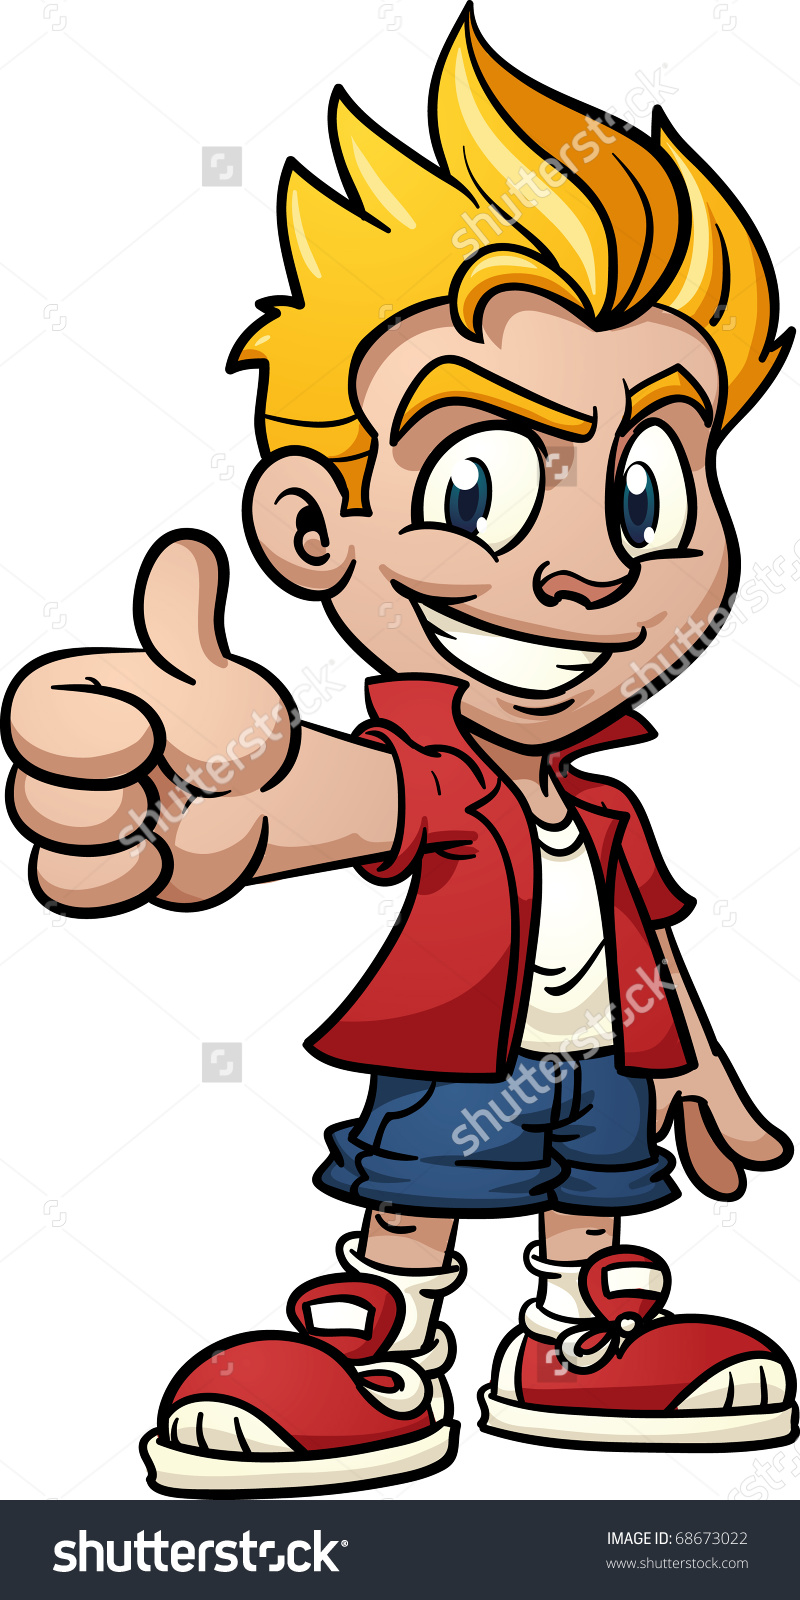 Kids thumbs up clipart jpg royalty free library cool cartoon kid making thumbs up hand gesture vector illustration ... jpg royalty free library